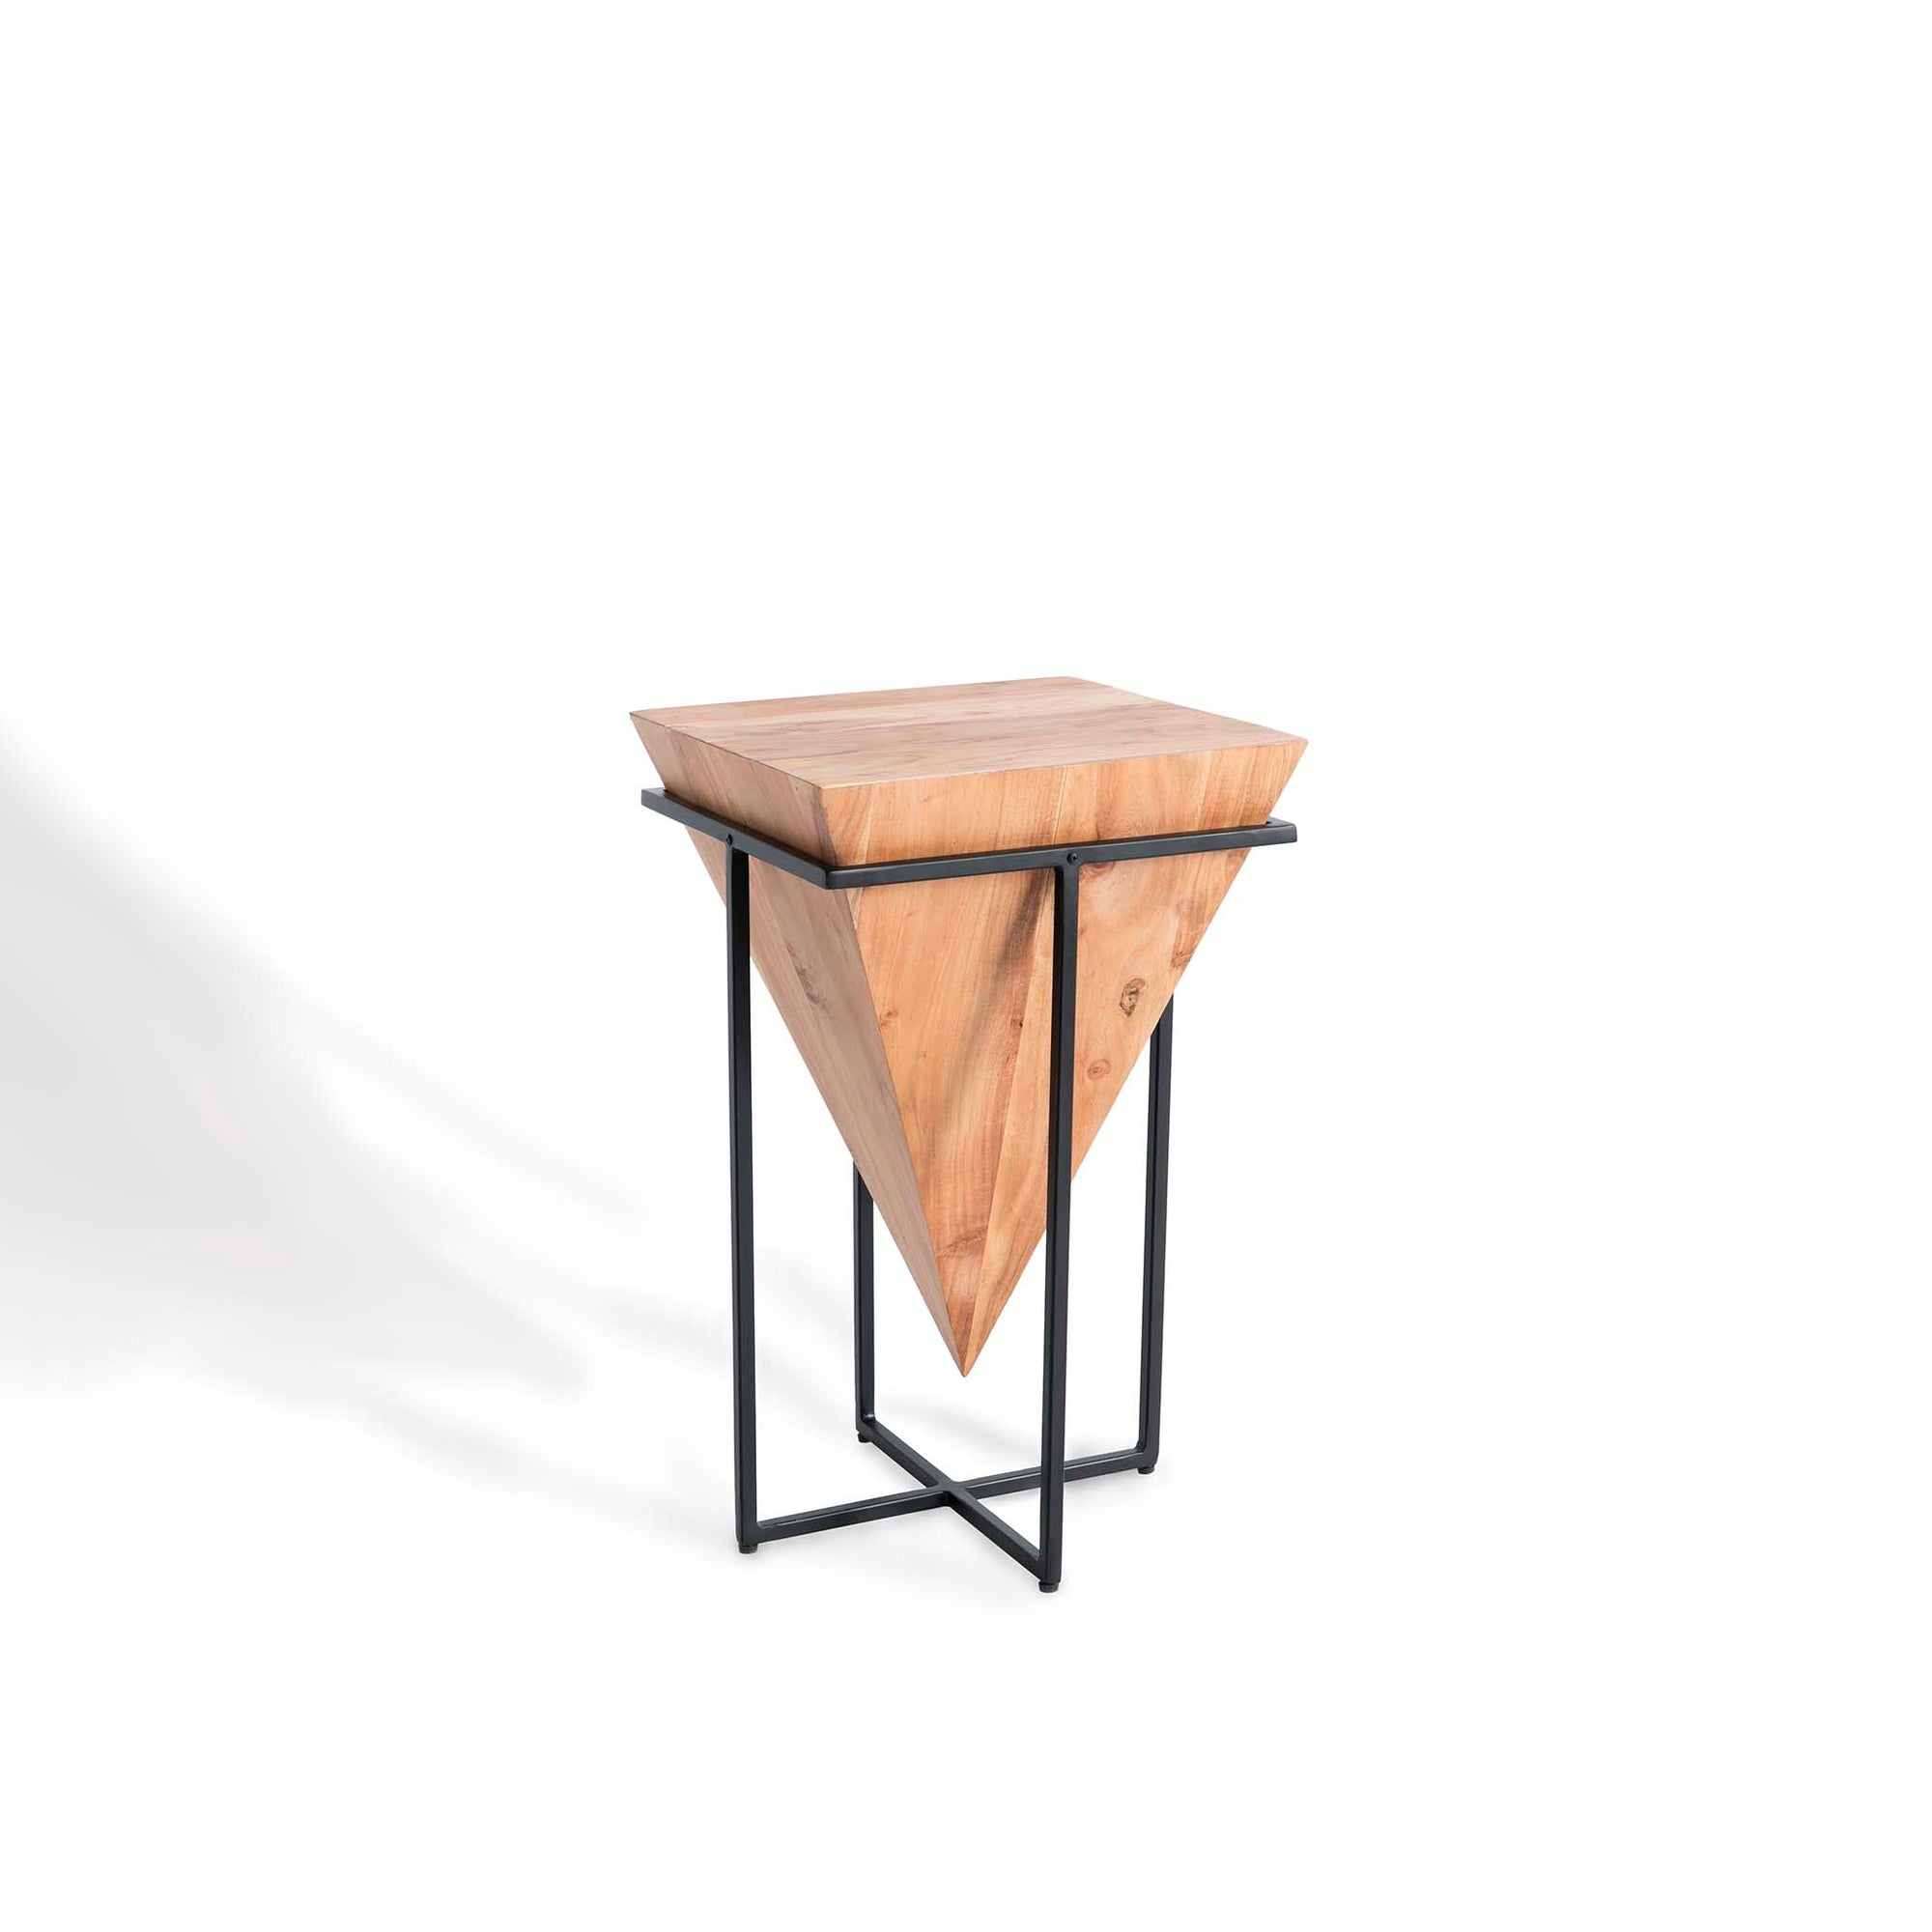 Freya Acacia Small Cube Lamp Table by Roseland Furniture